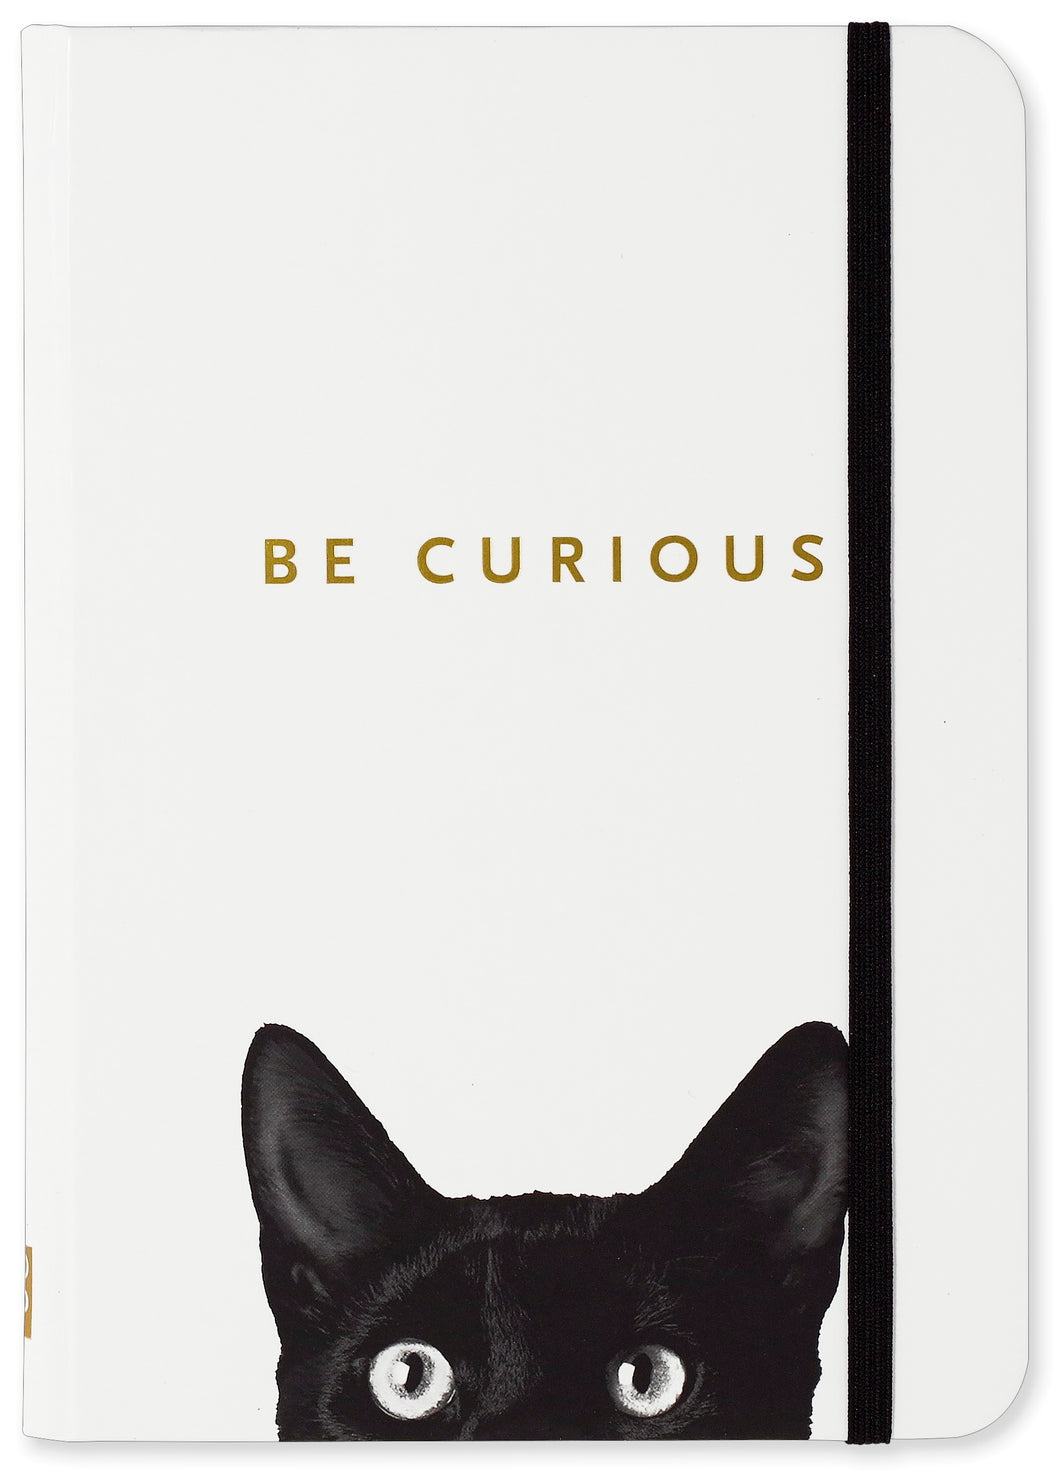 Curious Cat Journal - Small - دفتر قطة صغير